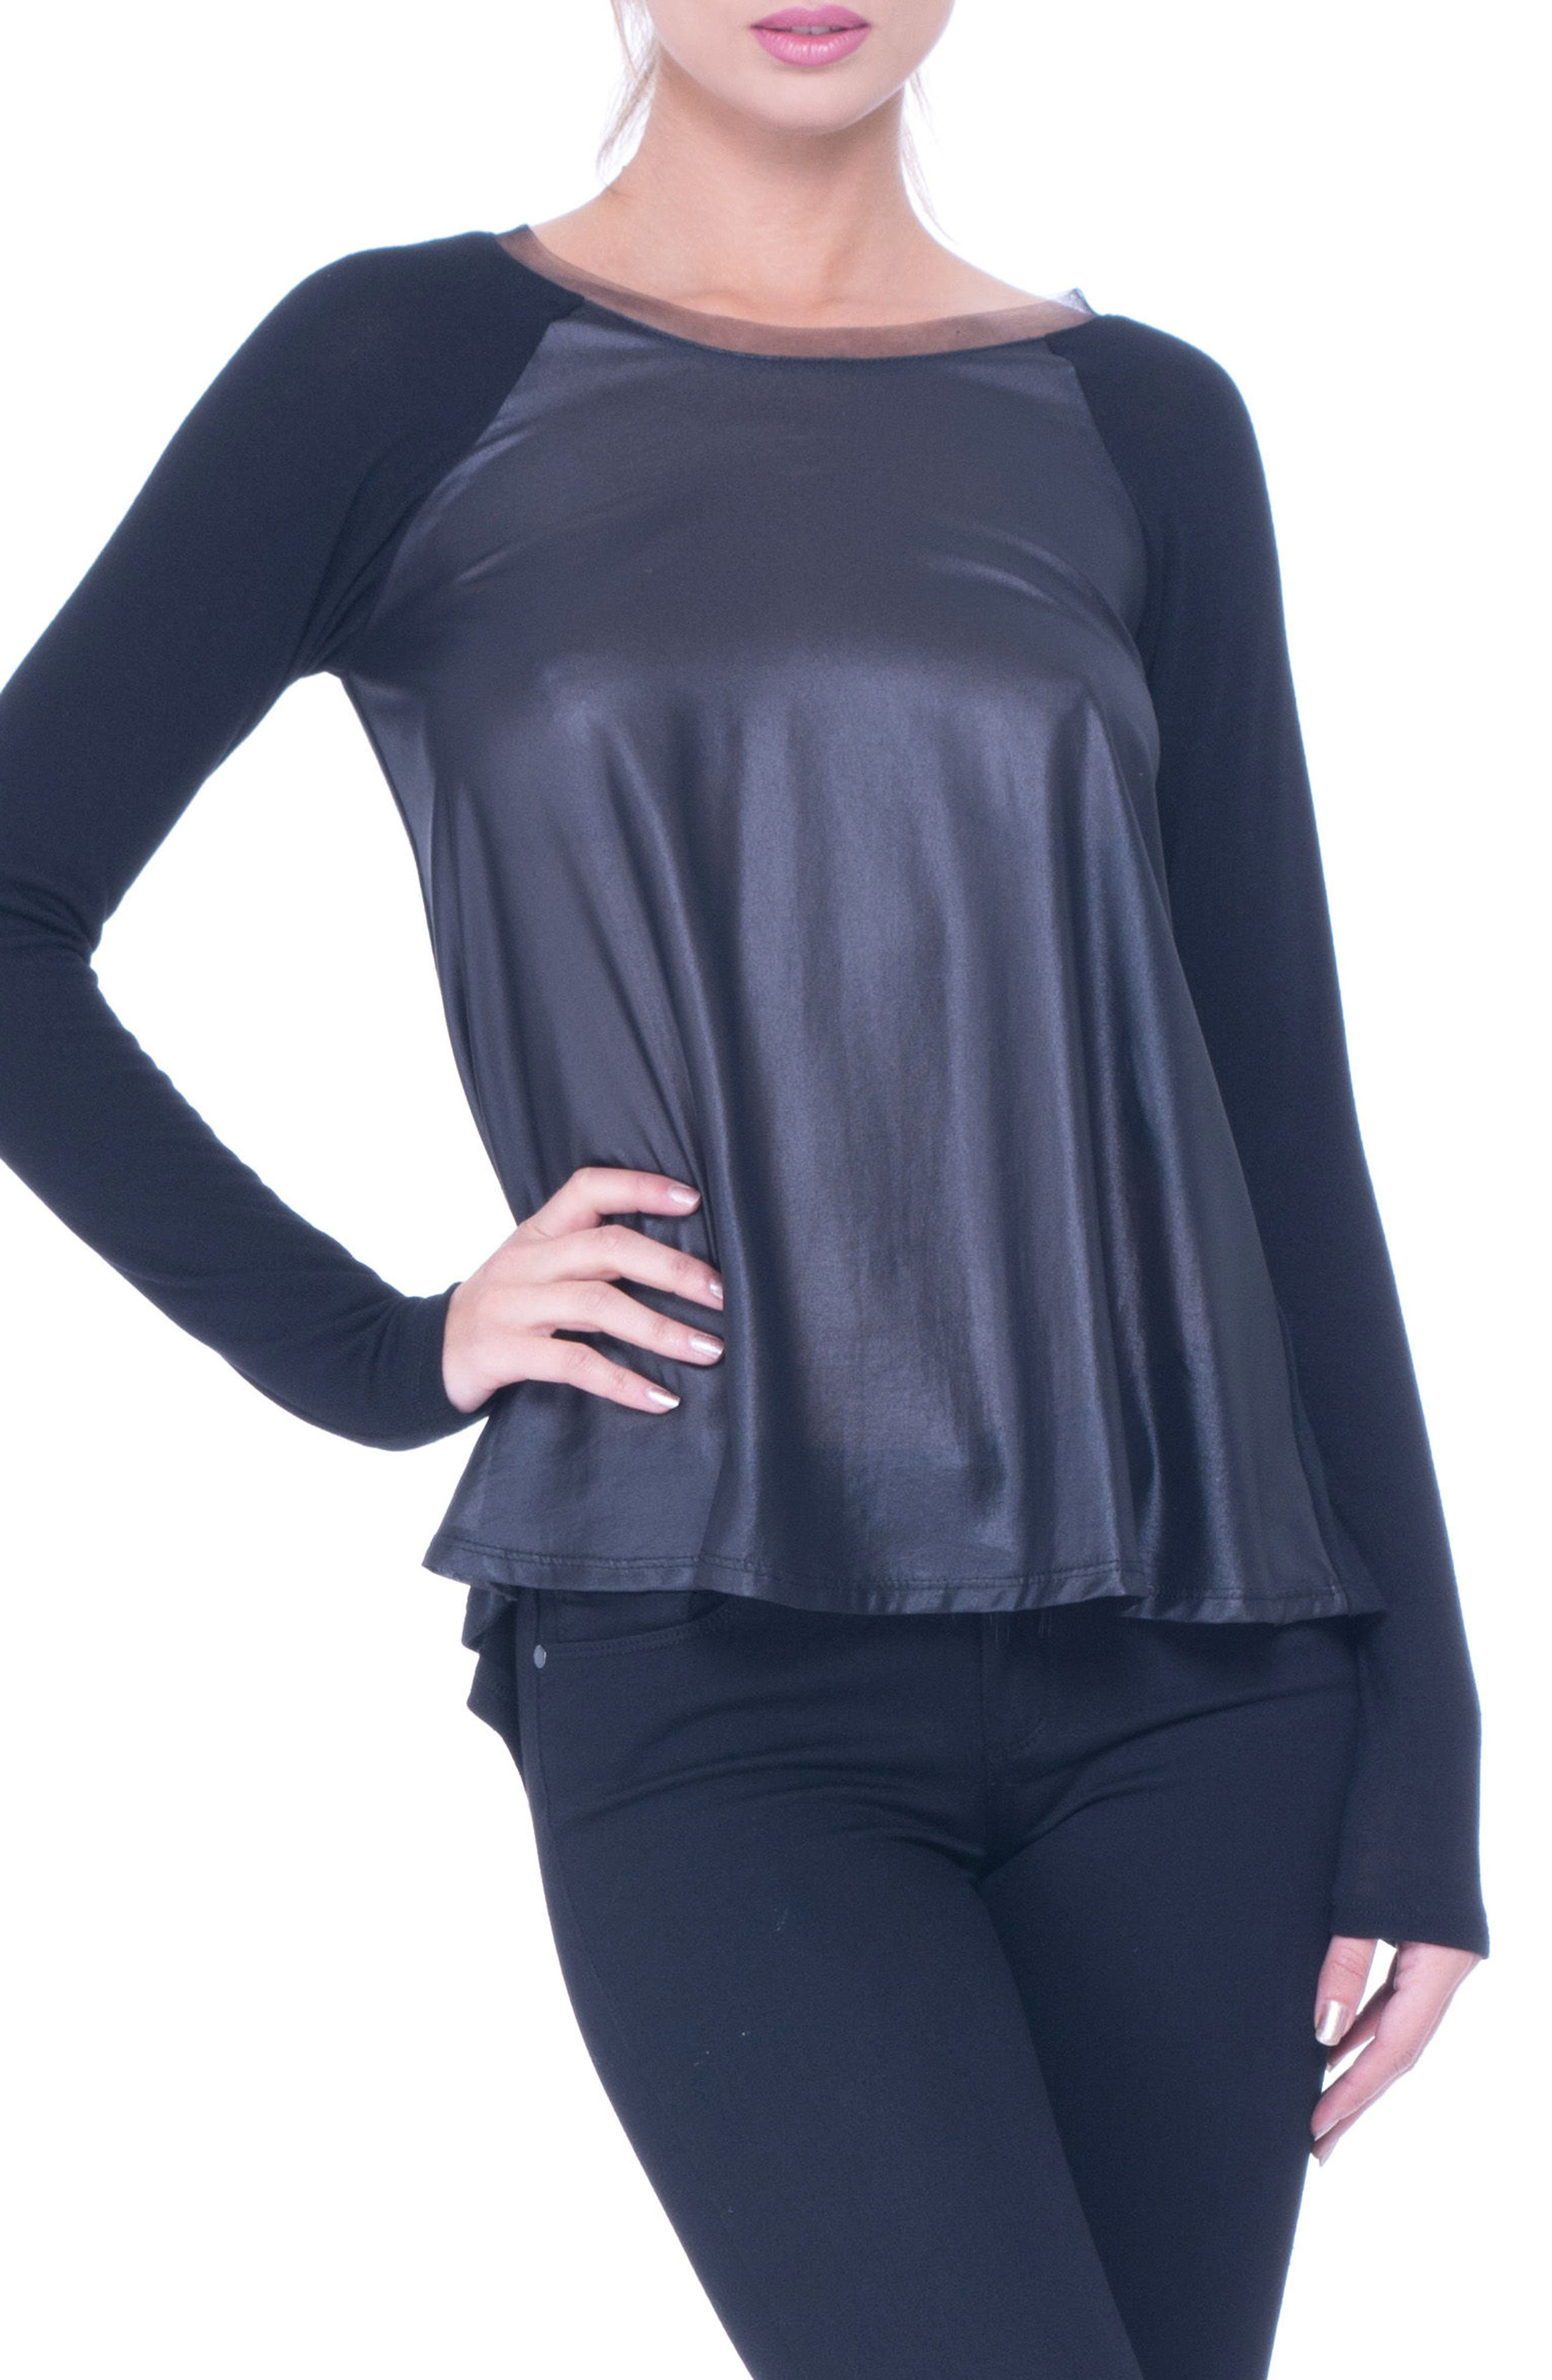 Alternate Image 1 Selected - Olian Elena Faux Leather & Chiffon Maternity Top